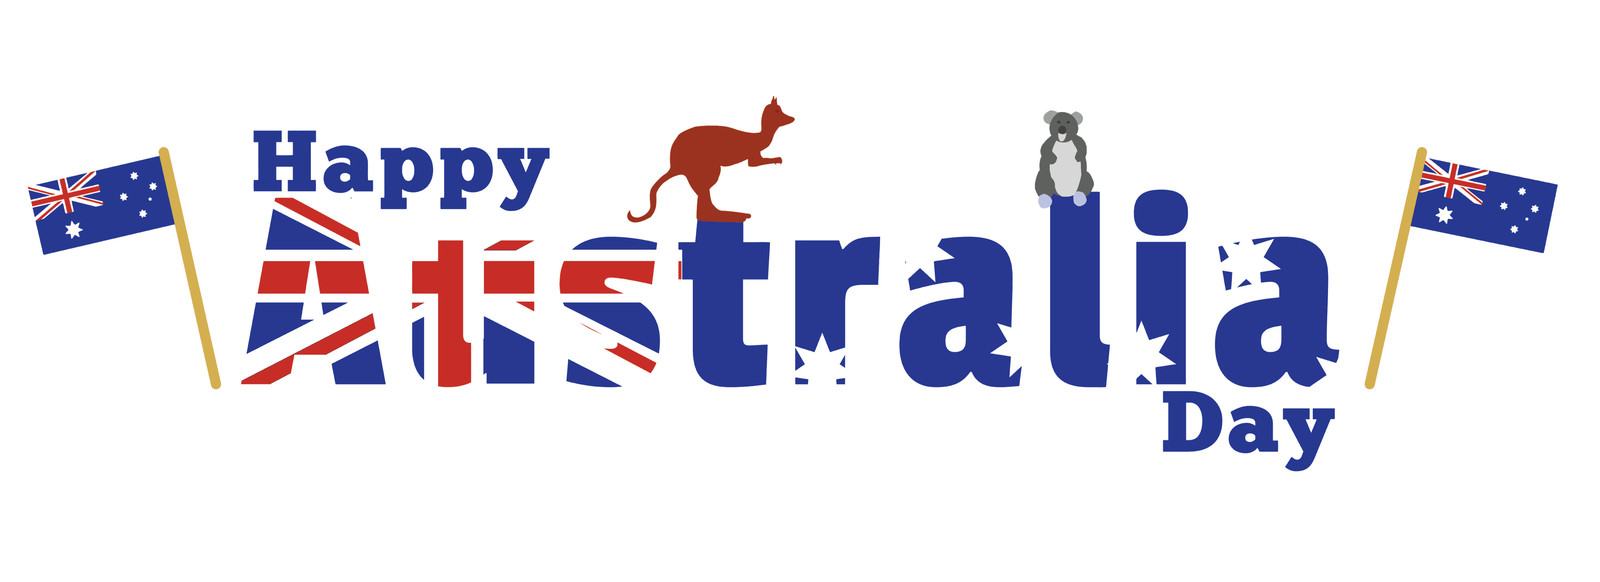 Australia Day Wishes 23